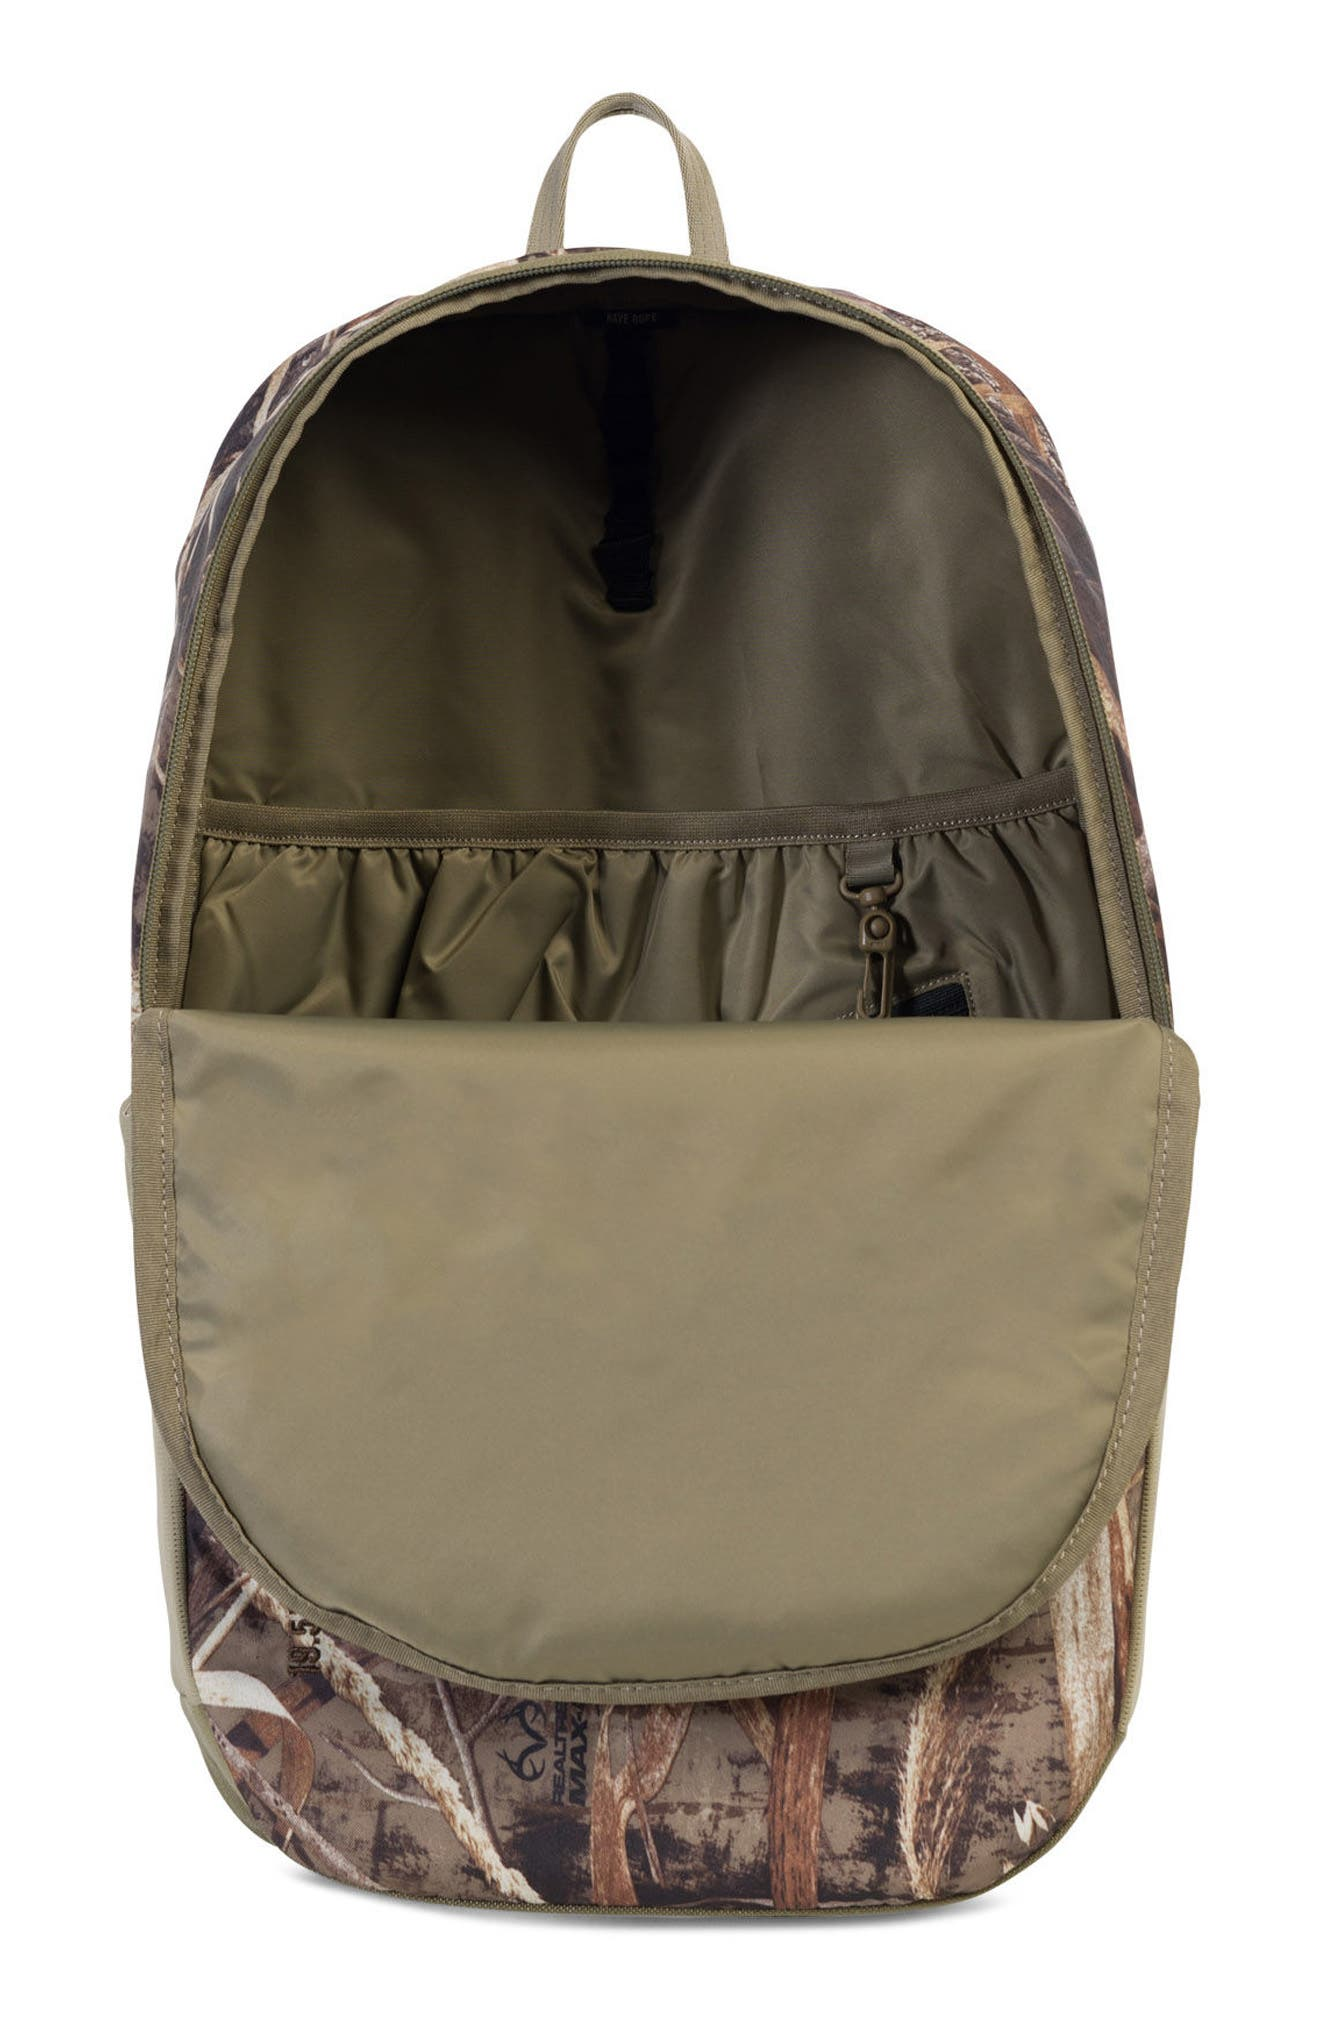 Mammoth Trail Backpack,                             Alternate thumbnail 3, color,